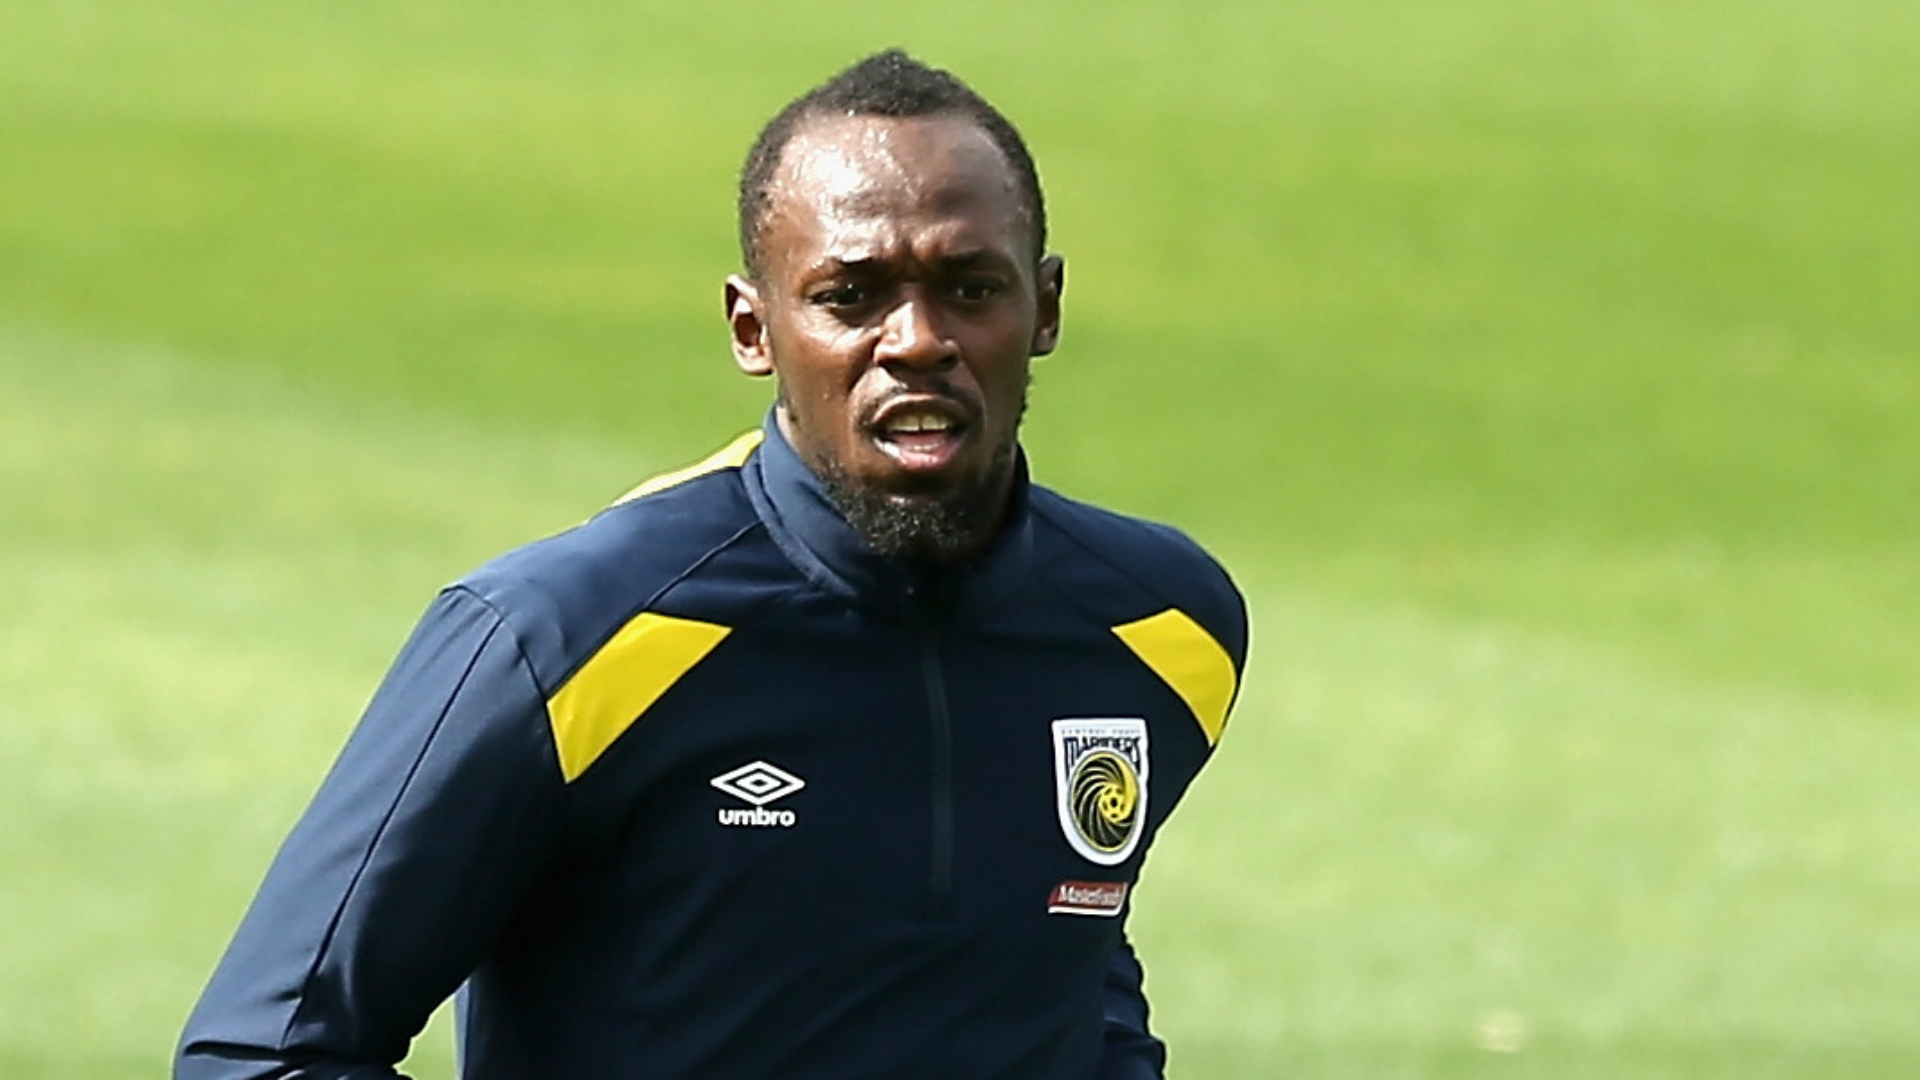 Usain Bolt makes respectable preseason debut for Central Coast Mariners